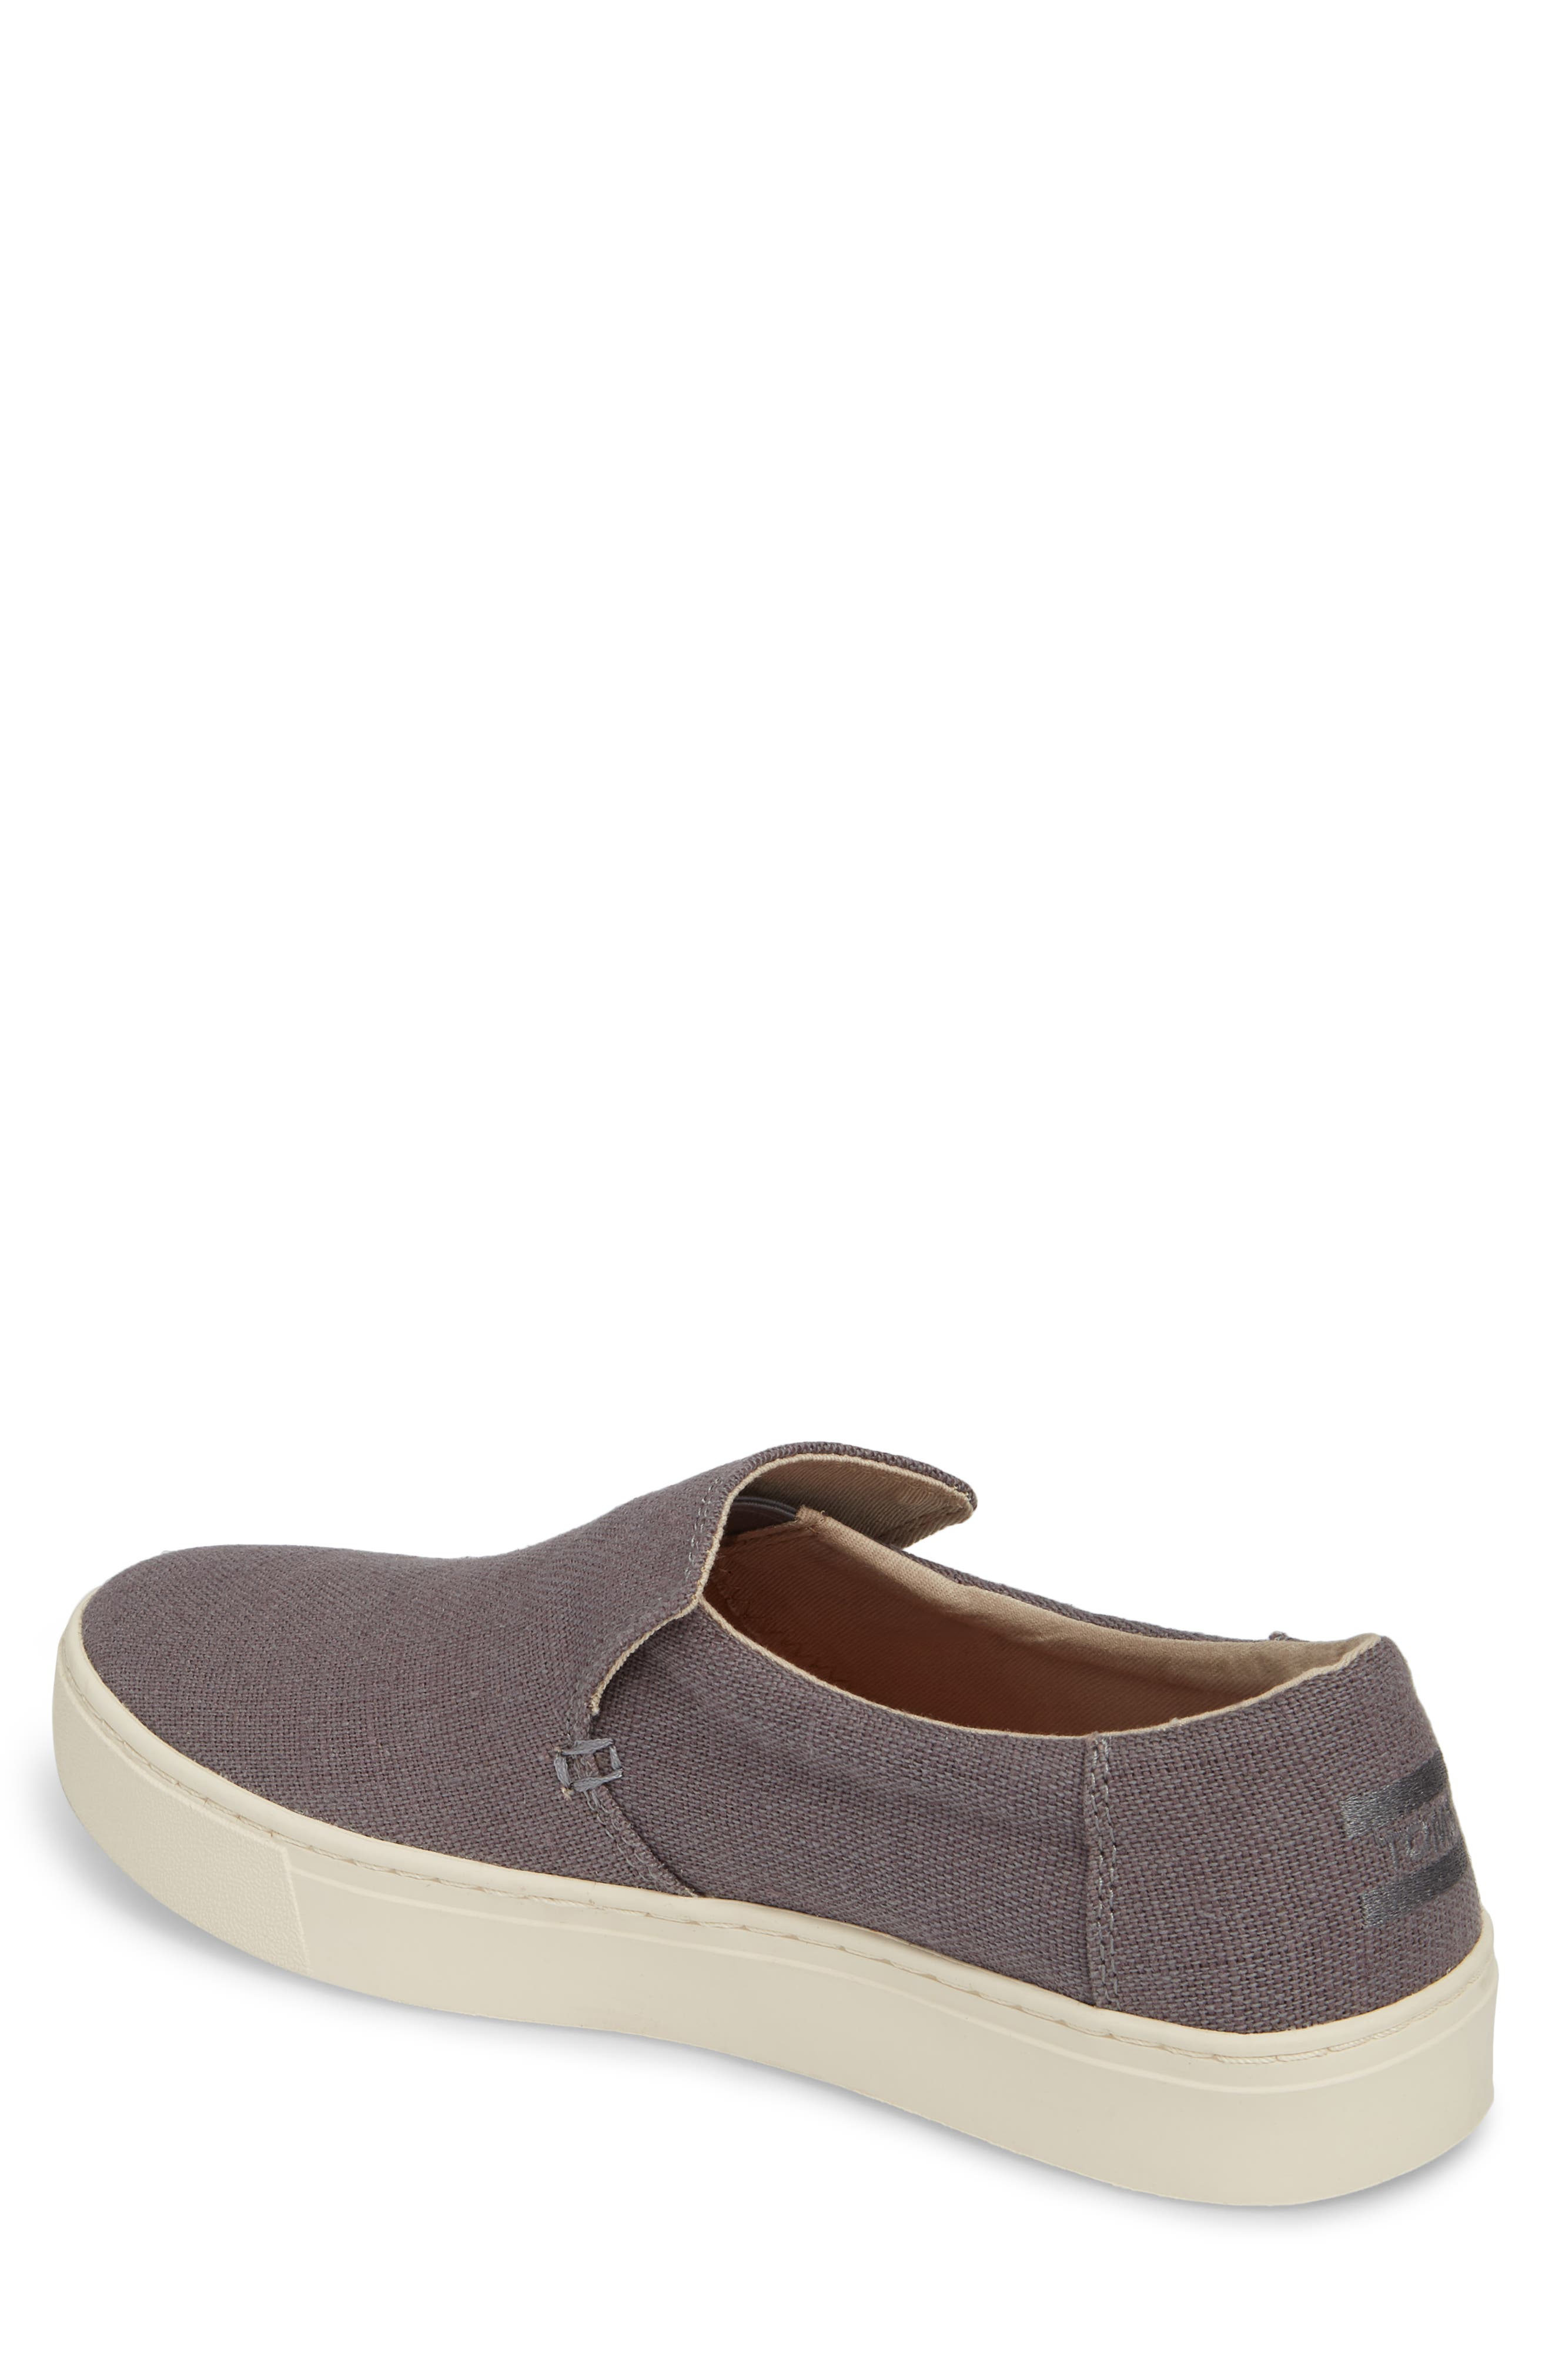 Loma Slip-On Sneaker,                             Alternate thumbnail 2, color,                             SHADE HERITAGE CANVAS